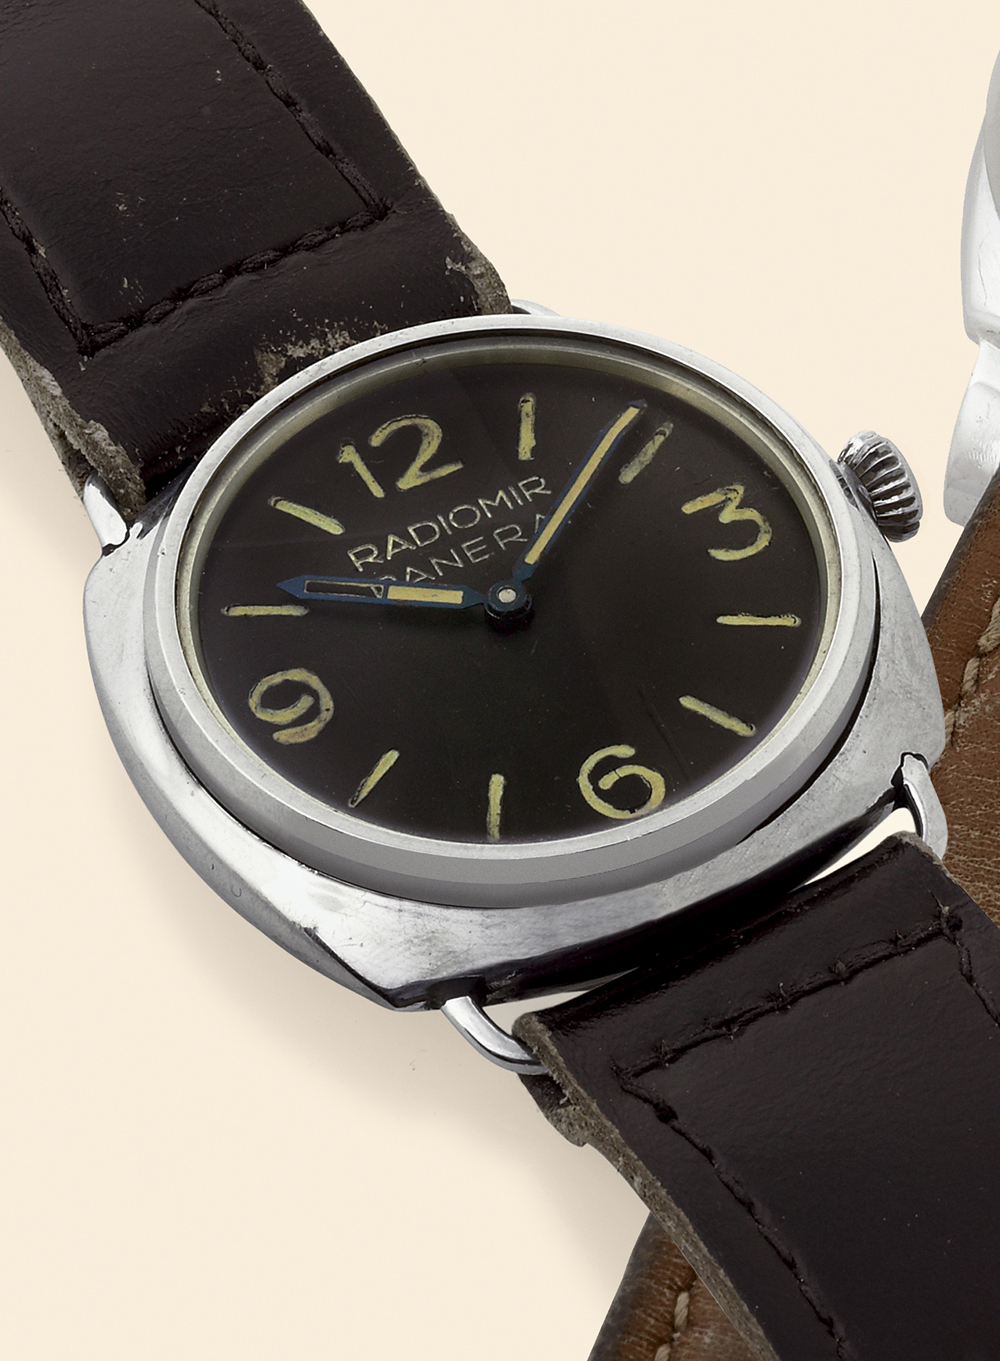 The military diver s watch a revisionist view by james - Panerai dive watch ...